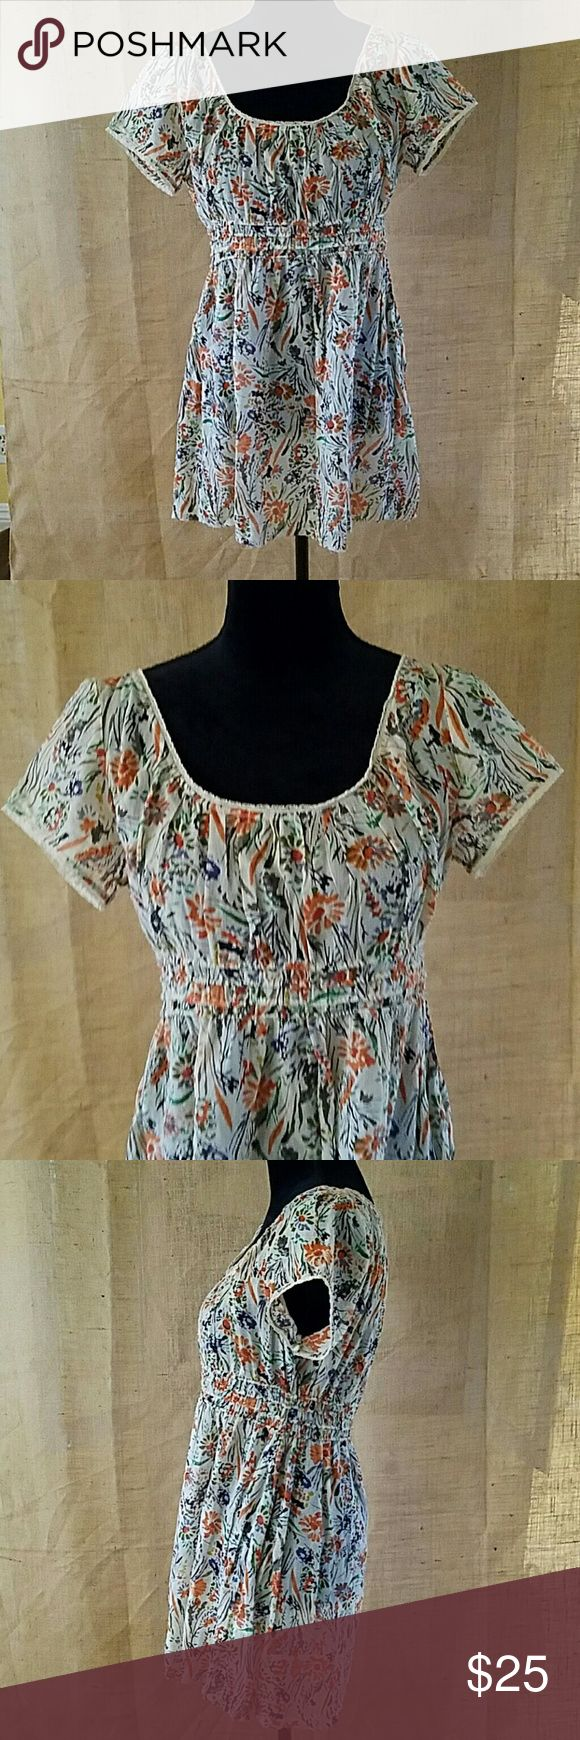 """lucky brand women peasant boho floral shirt M lucky brand women peasant boho floral shirt M, under arm to under arm 20"""", waist side to side 15"""" plus has elastic band, back up down 28"""" Lucky Brand Tops Tunics"""